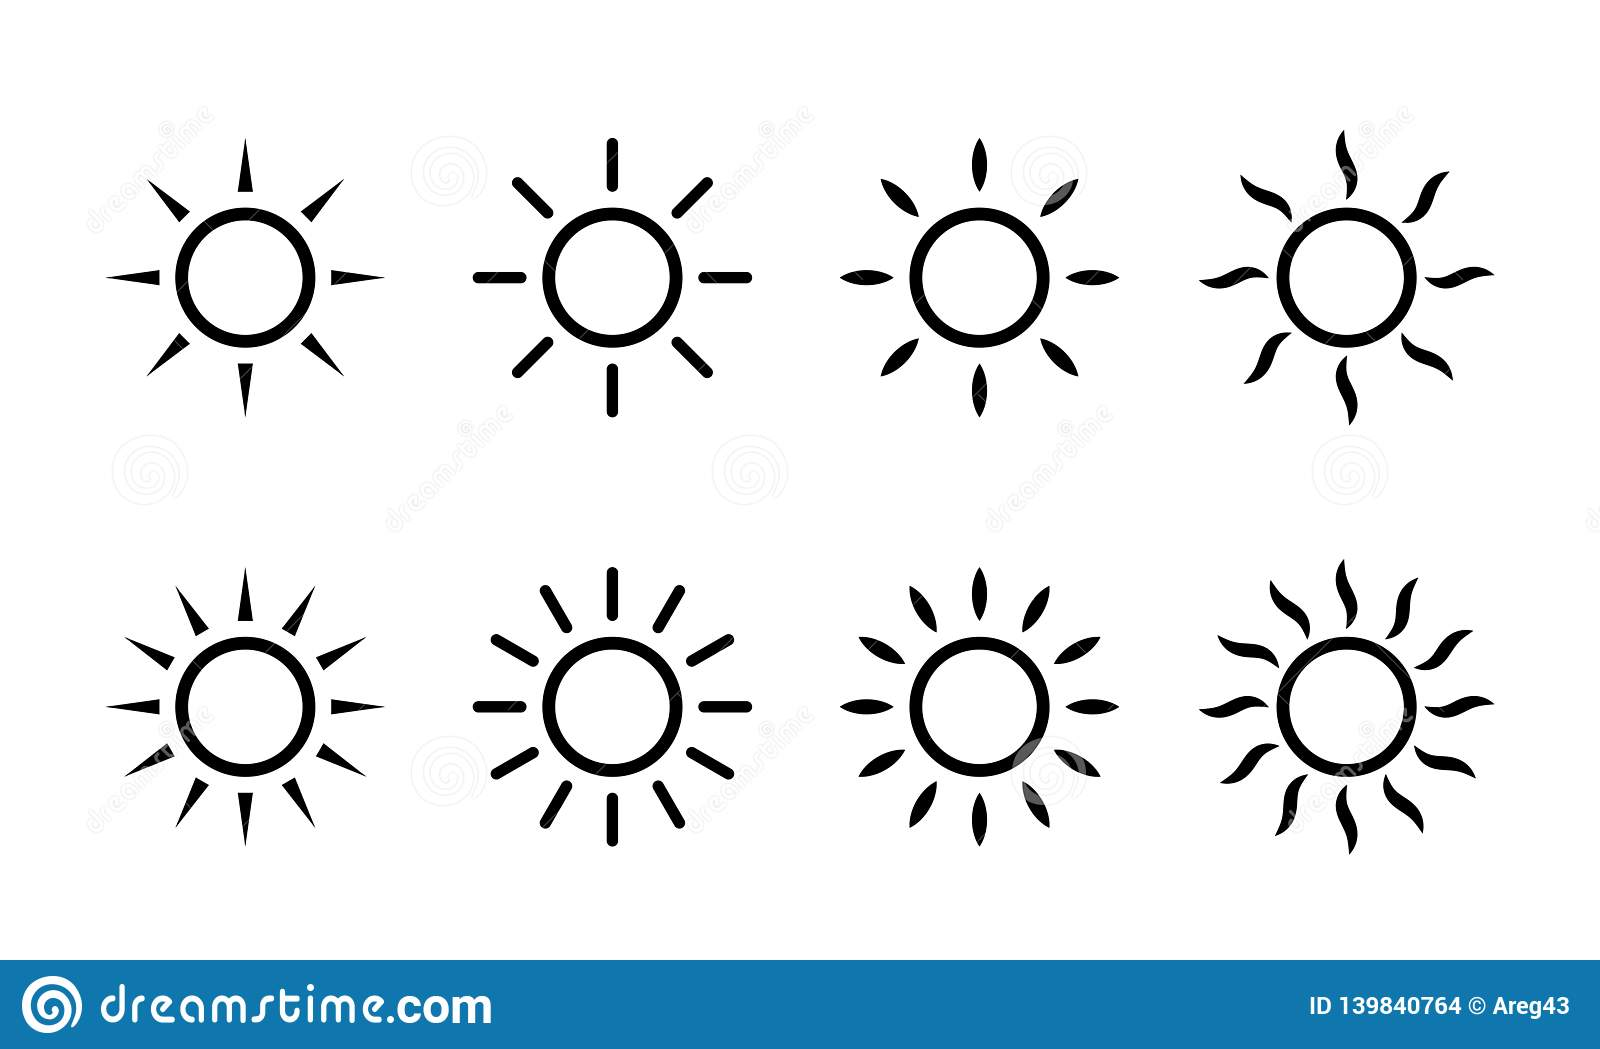 Sun vector sunshine line icons. Simple sun icon with rays or sunlight beams